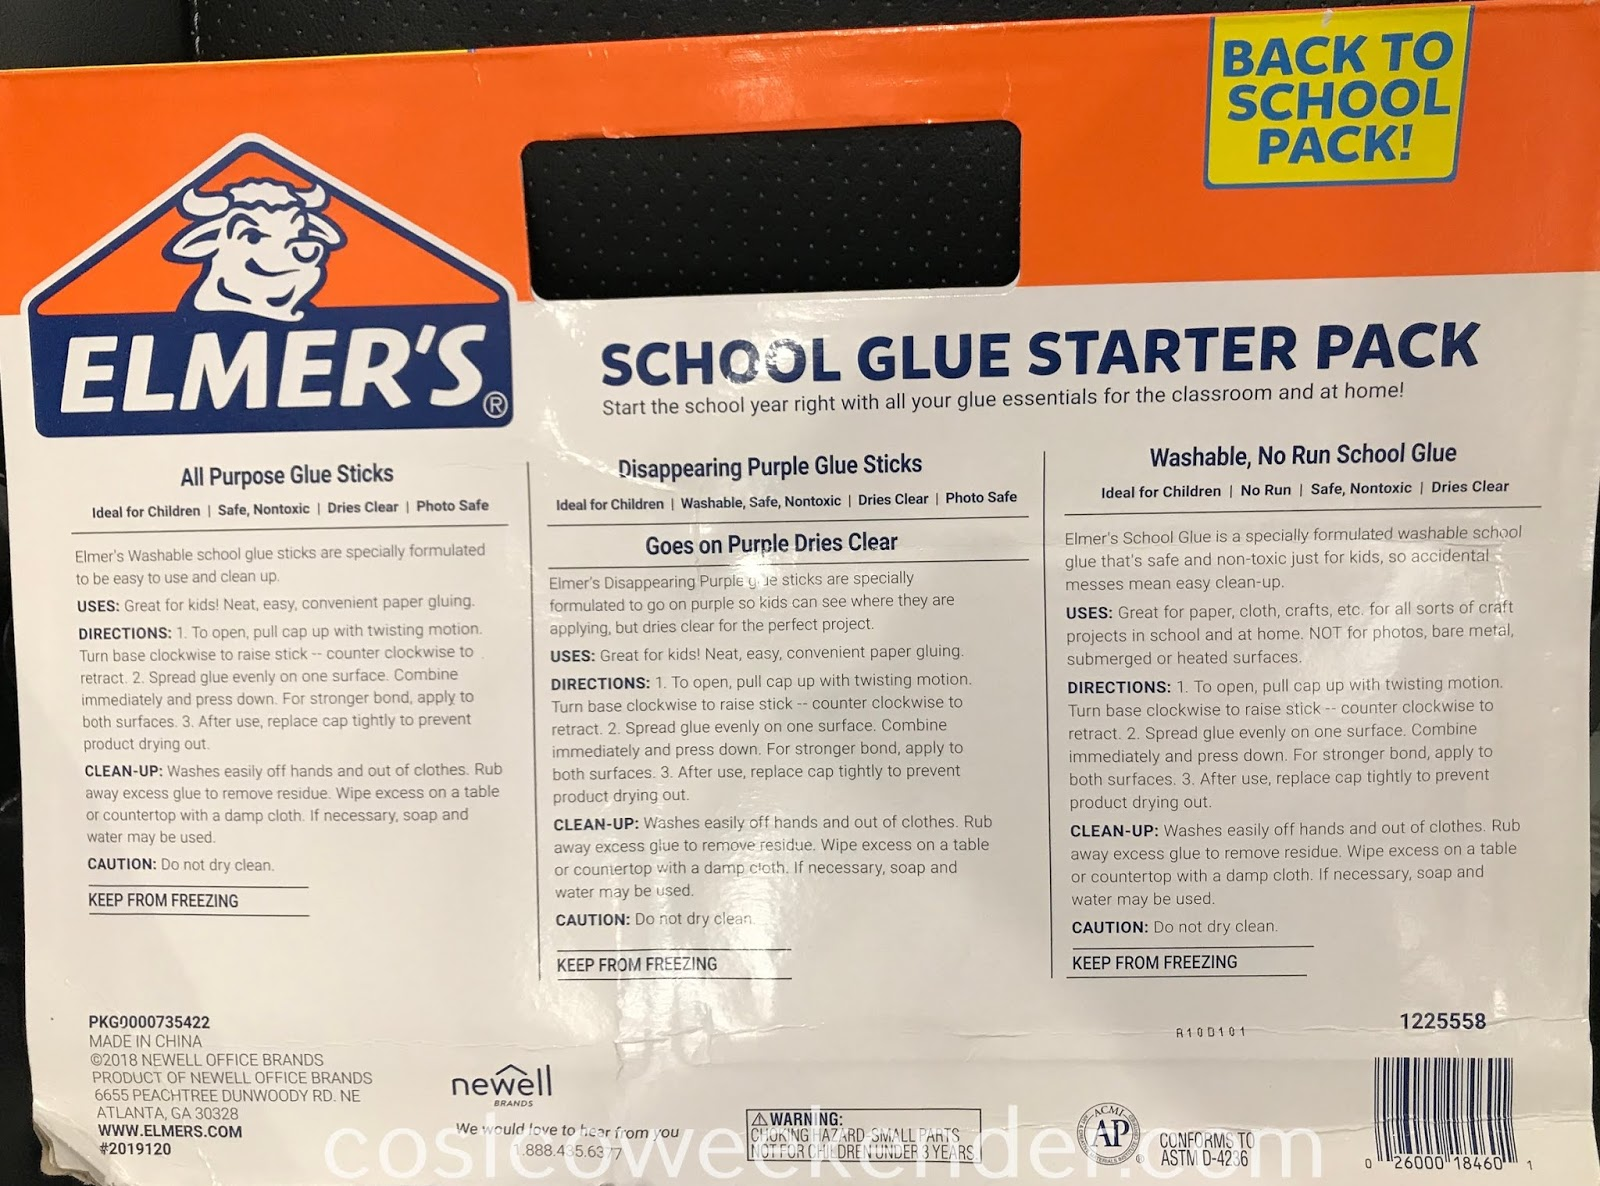 Costco 1225558 - Elmer's Glue School Starter Pack: great for art class